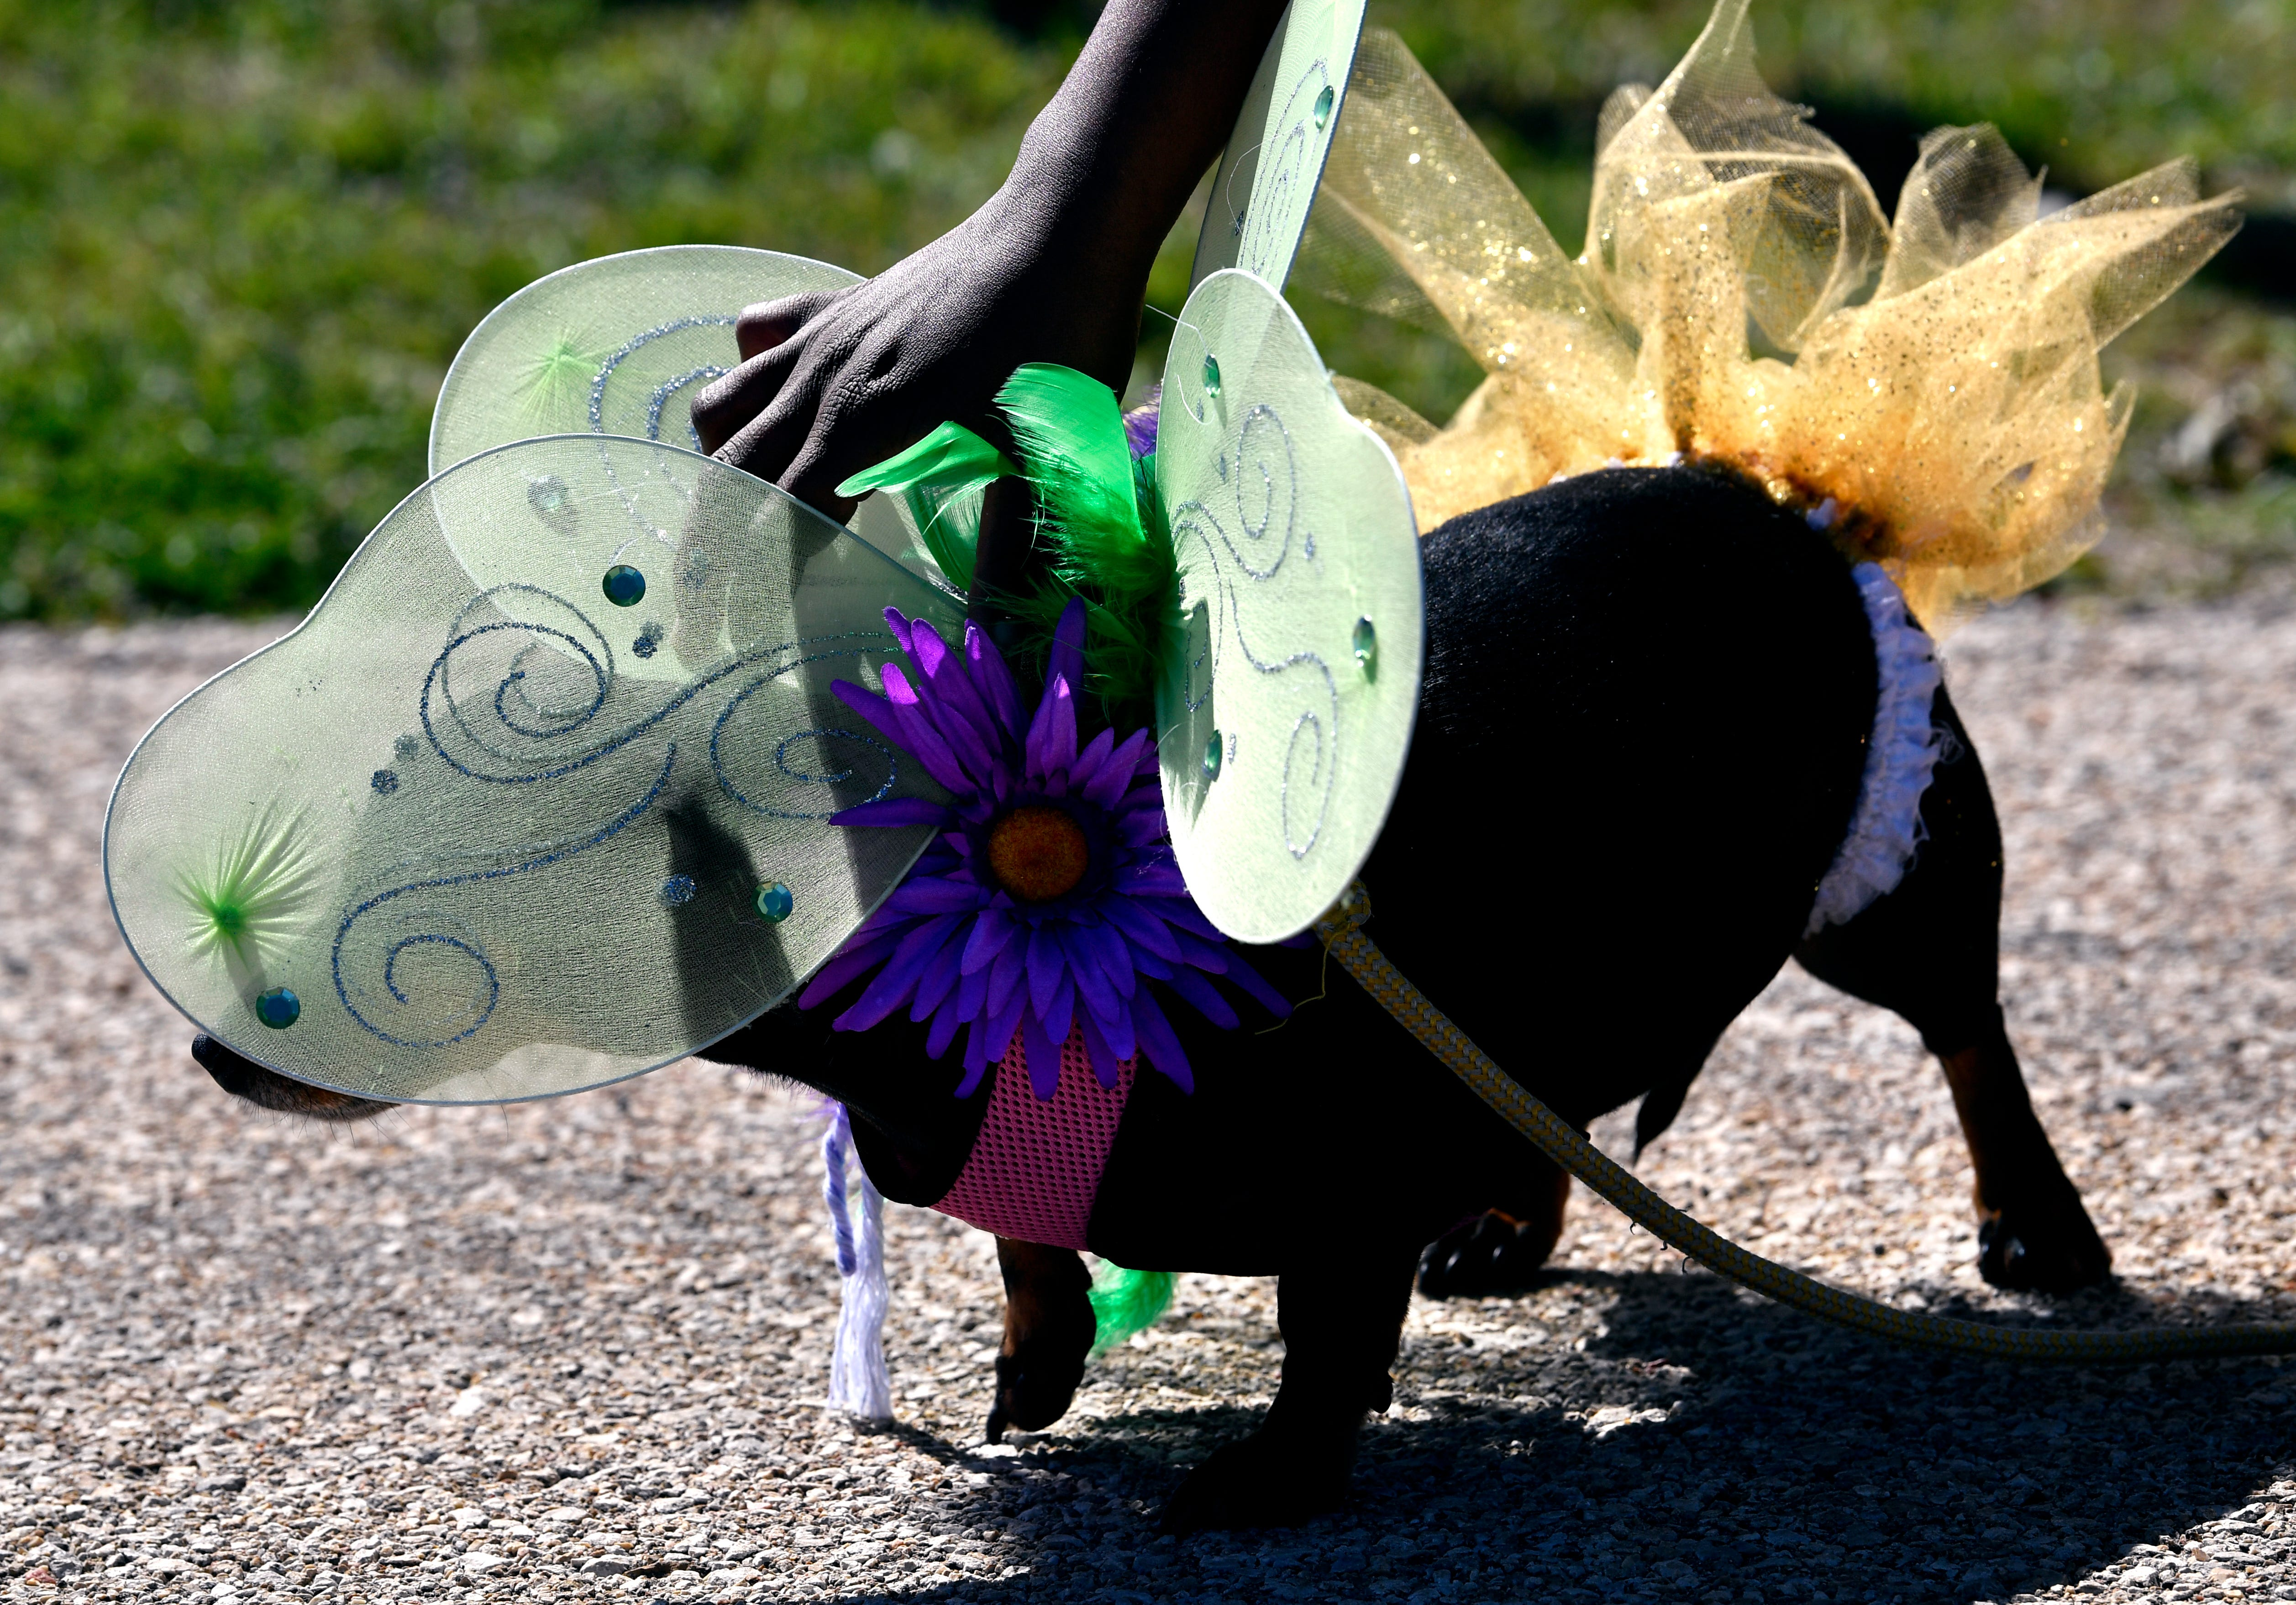 Lecrisha Govan adjusts the costume on her nine-year-old dachshund mix, Shaughnessy, during Saturday's Krewe of Barkus dog parade. Shaughnessy and Govan's other dog Lady were named co-queens at the Camp Barkeley dog park.